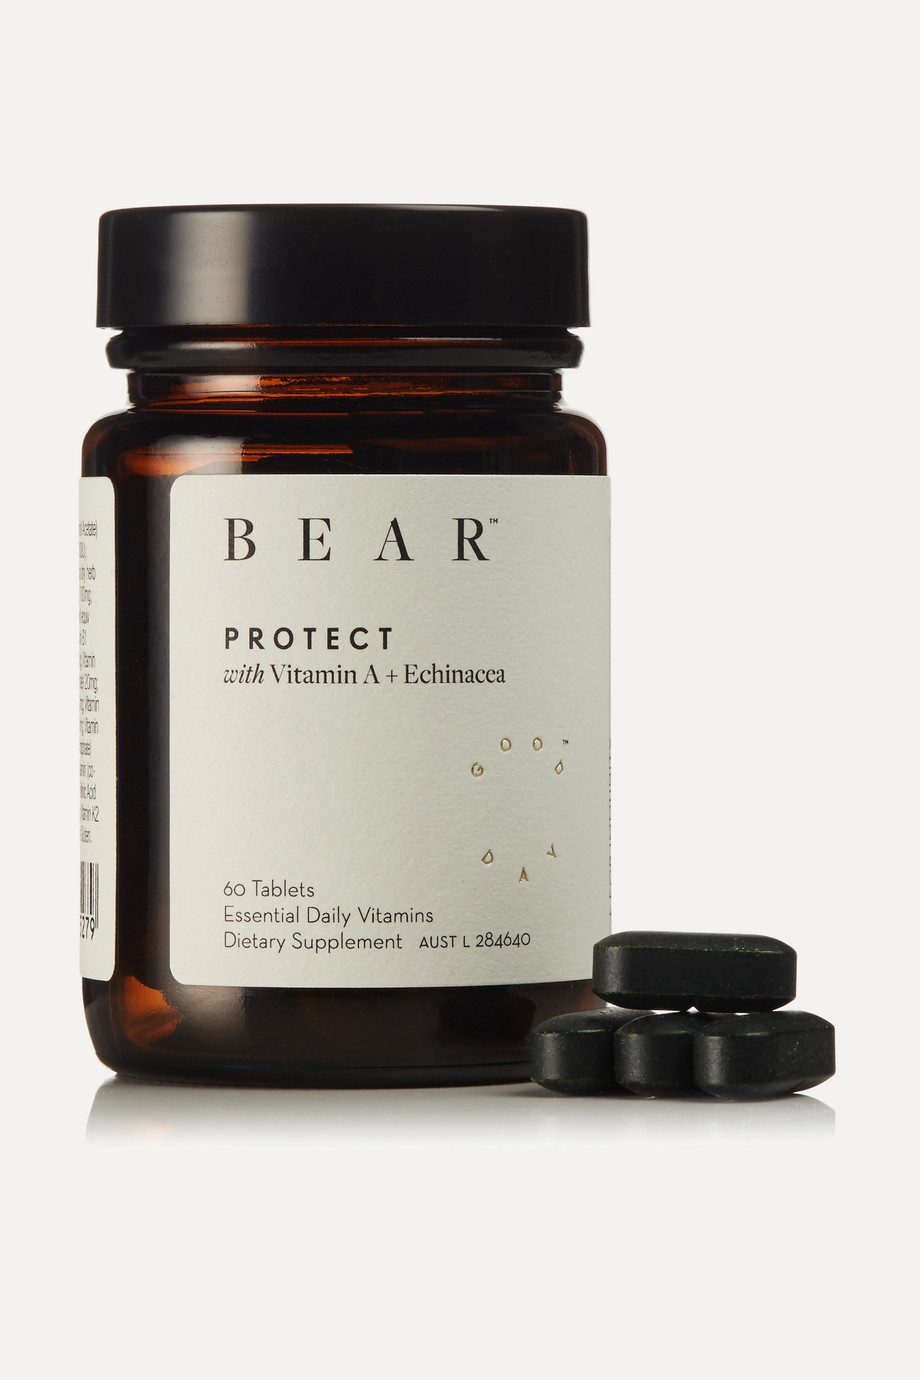 BEAR Protect Supplement